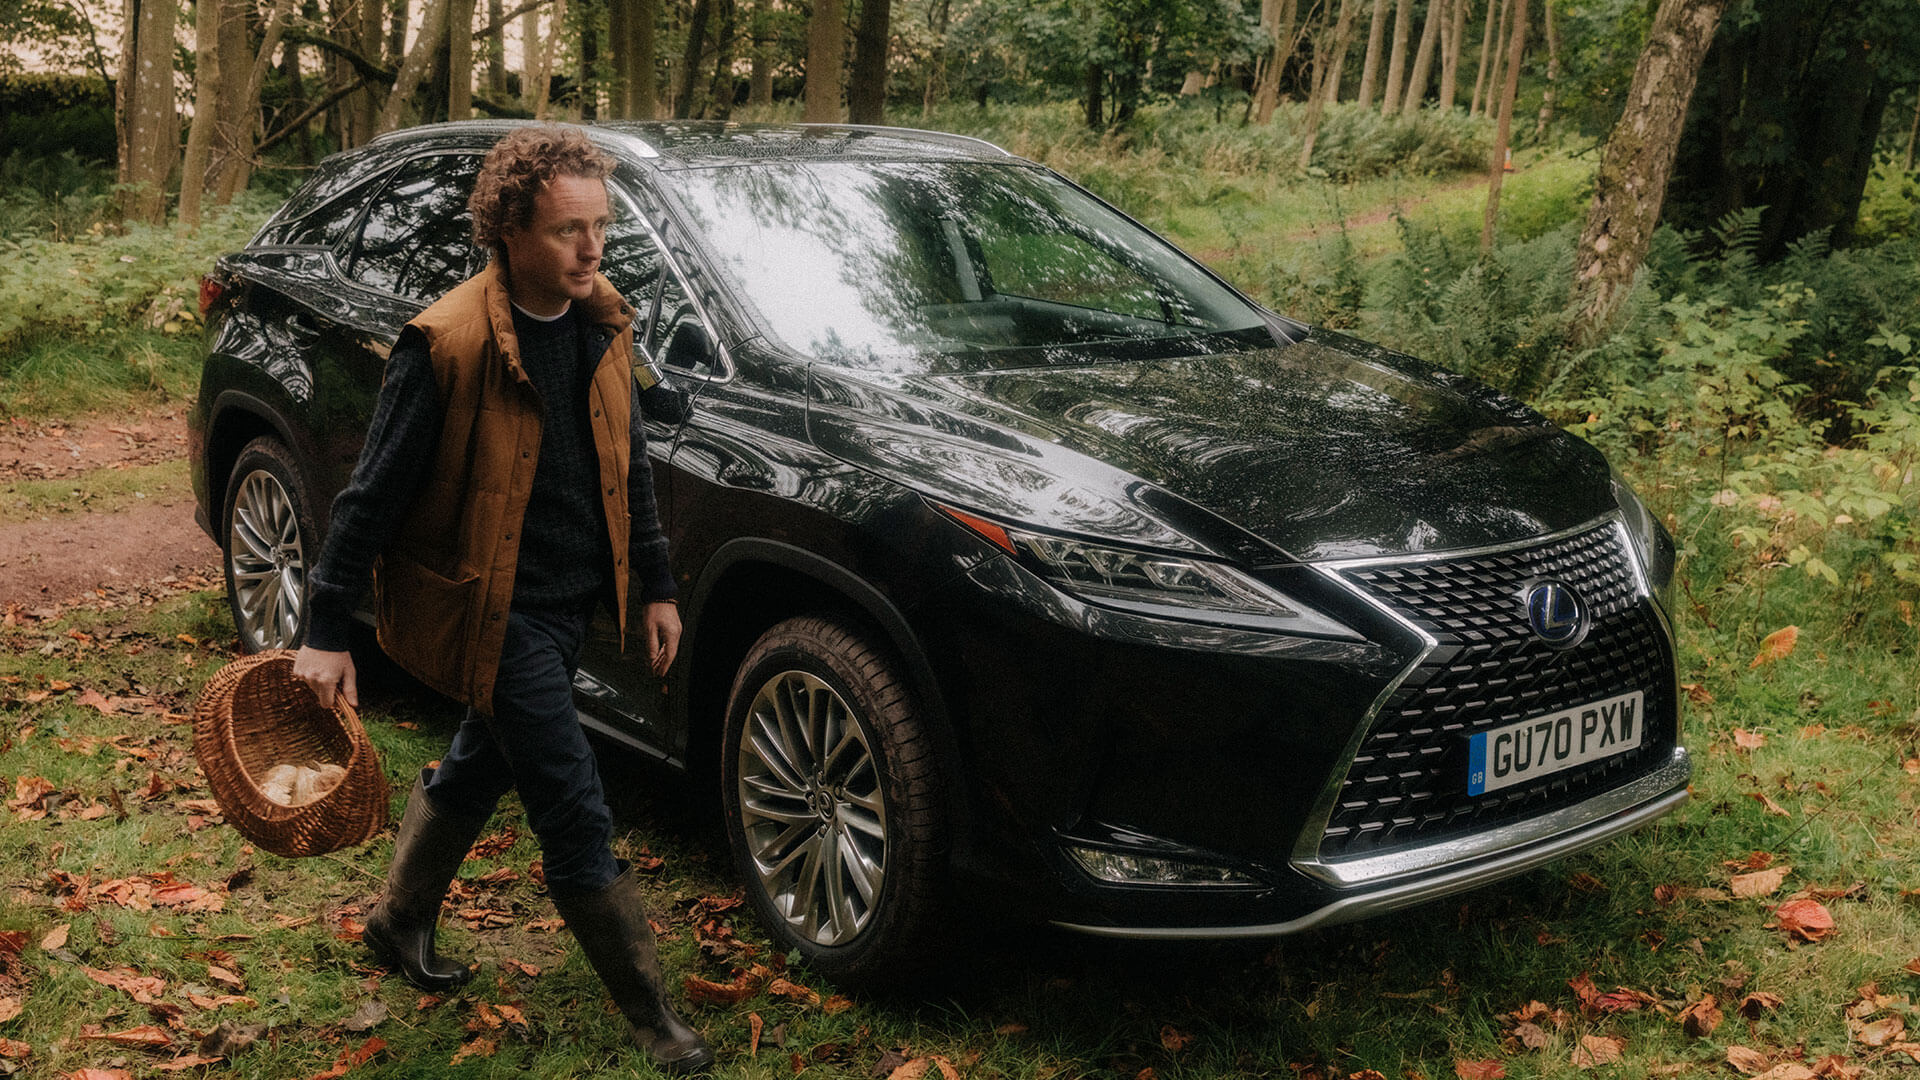 2020 lexus journeys in taste episode 7 gallery 01